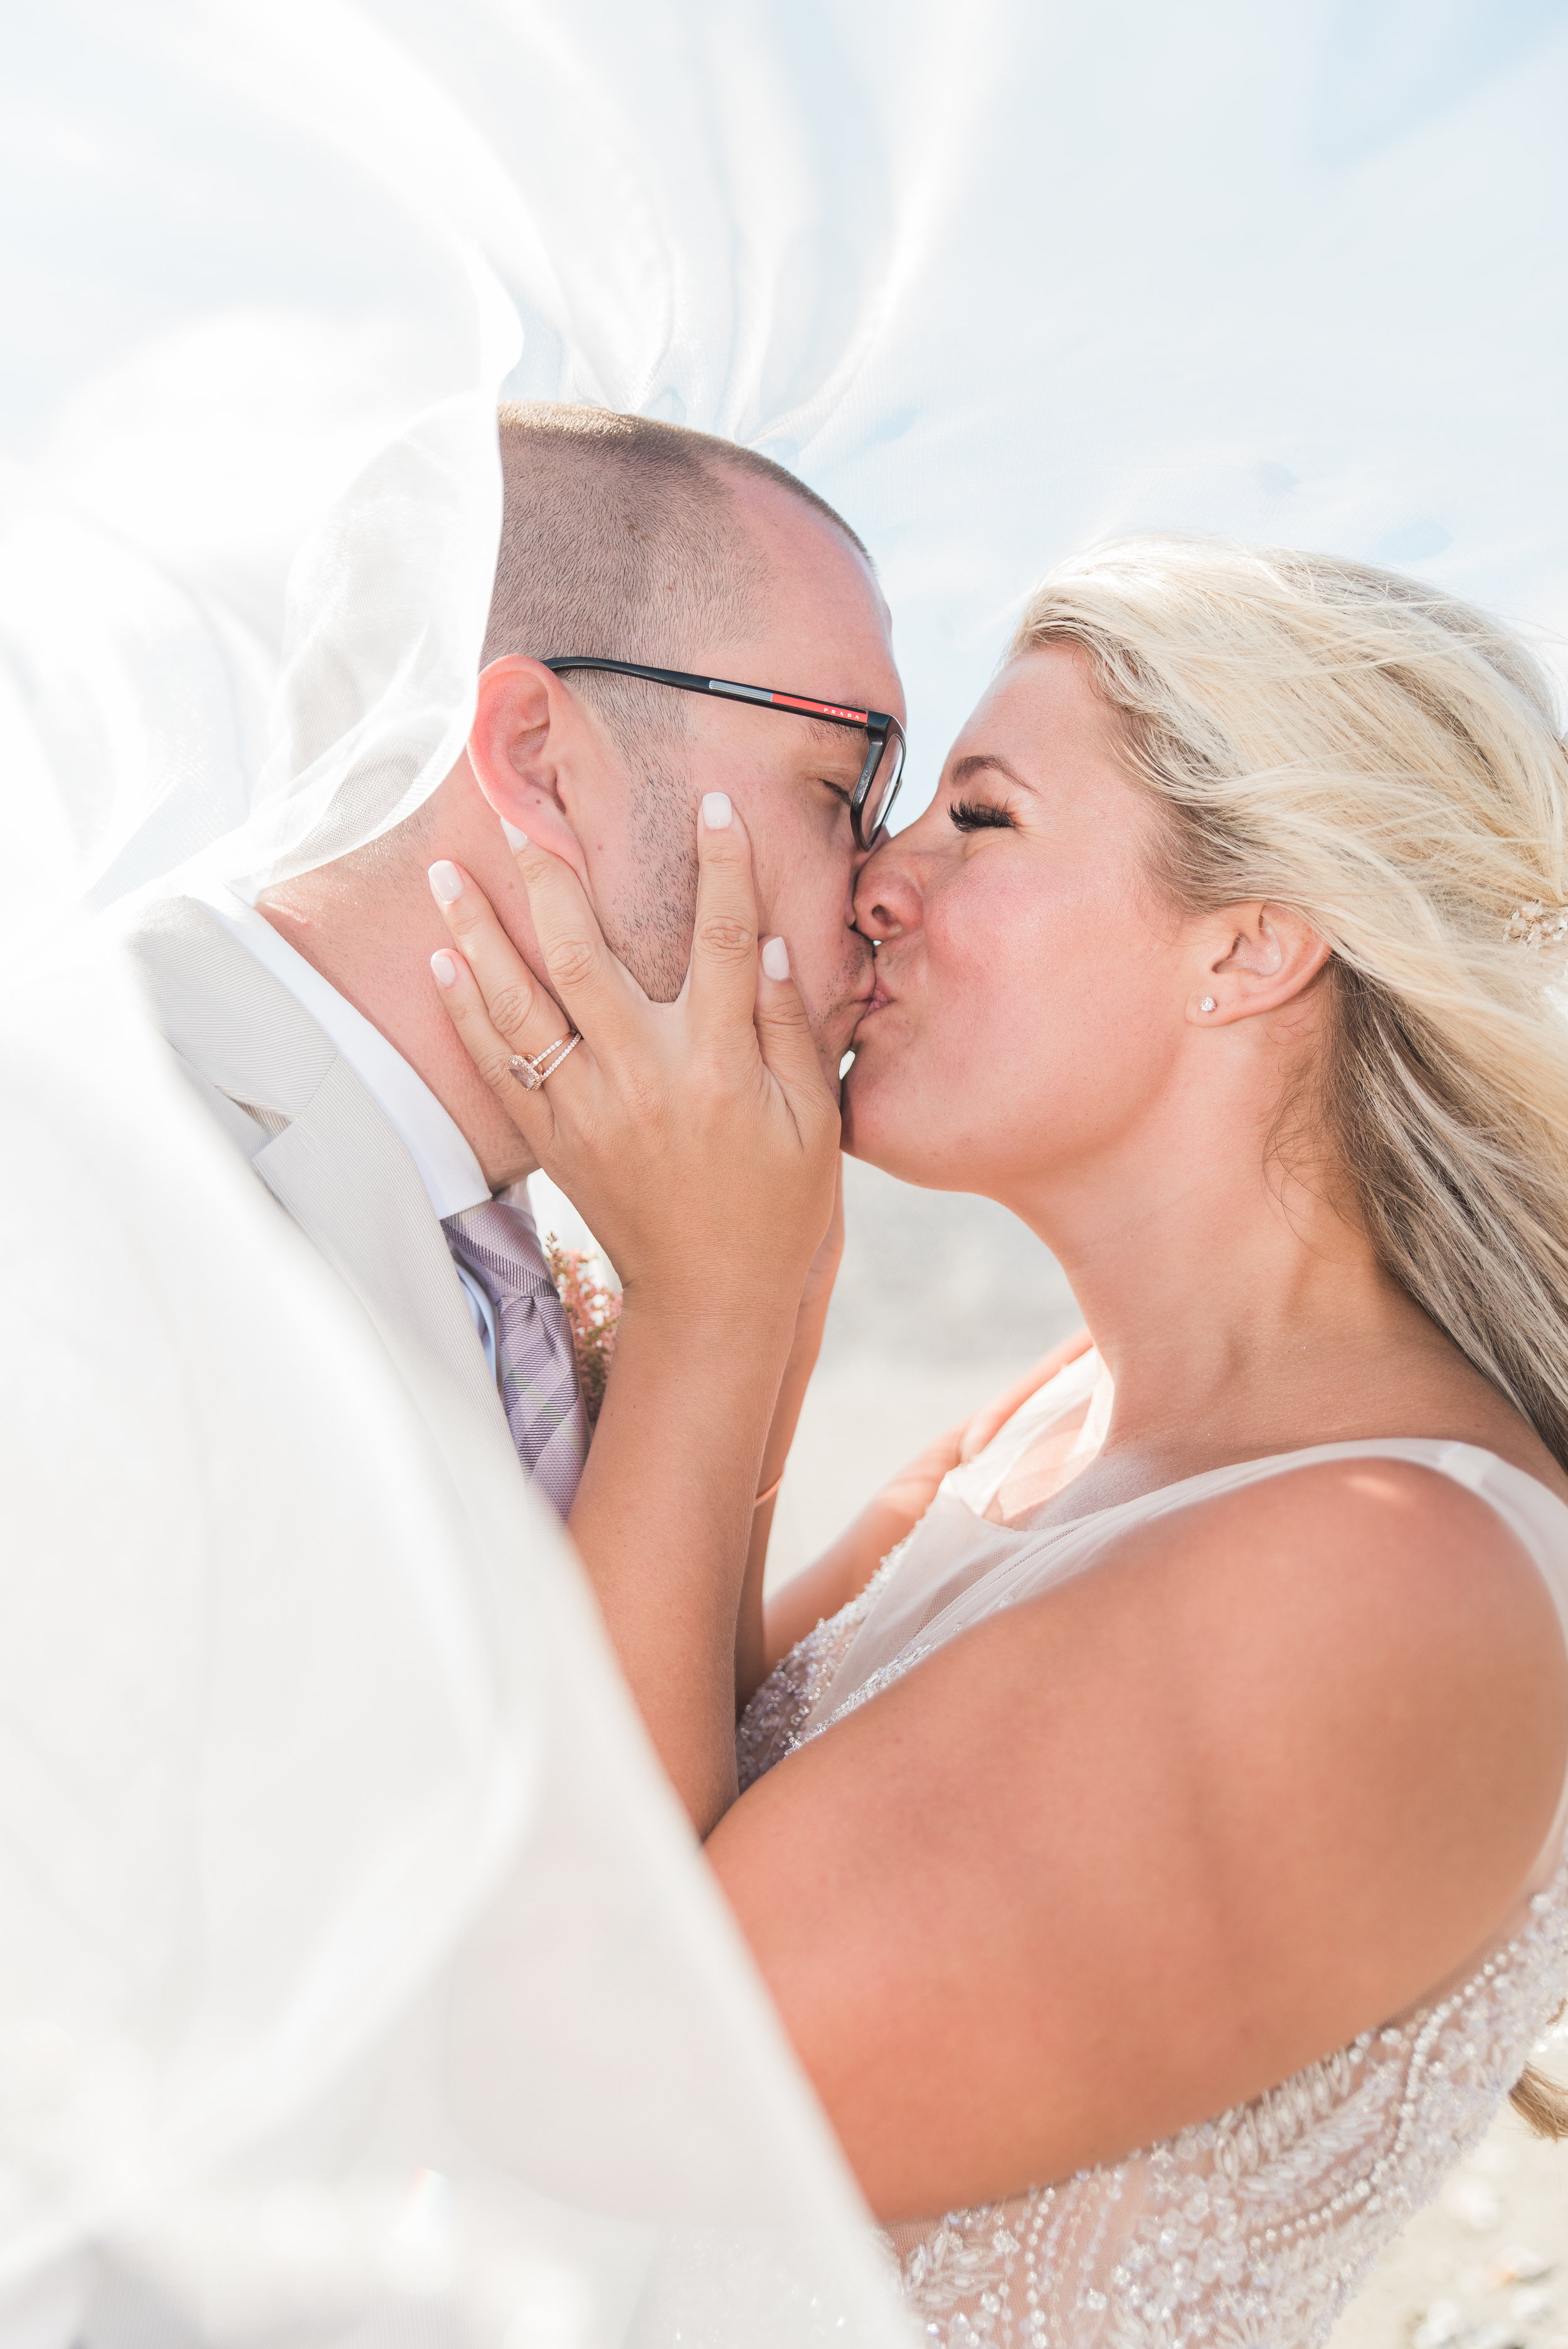 KAYLA + CHRIS - Shanna and Mike made our day magical! They were energetic, professional, easy to work with, and made us feel so comfortable and confident on our wedding day. Shanna trucked through the beach and on rocks with a broken foot to capture unforgettable photos! Every time there was a moment I hoped was being captured, Shanna and Mike were already there. We just received our photos and felt like we got to relive all of the magical moments of our day. My husband and I trusted them completely and are so happy with how they worked their magic!